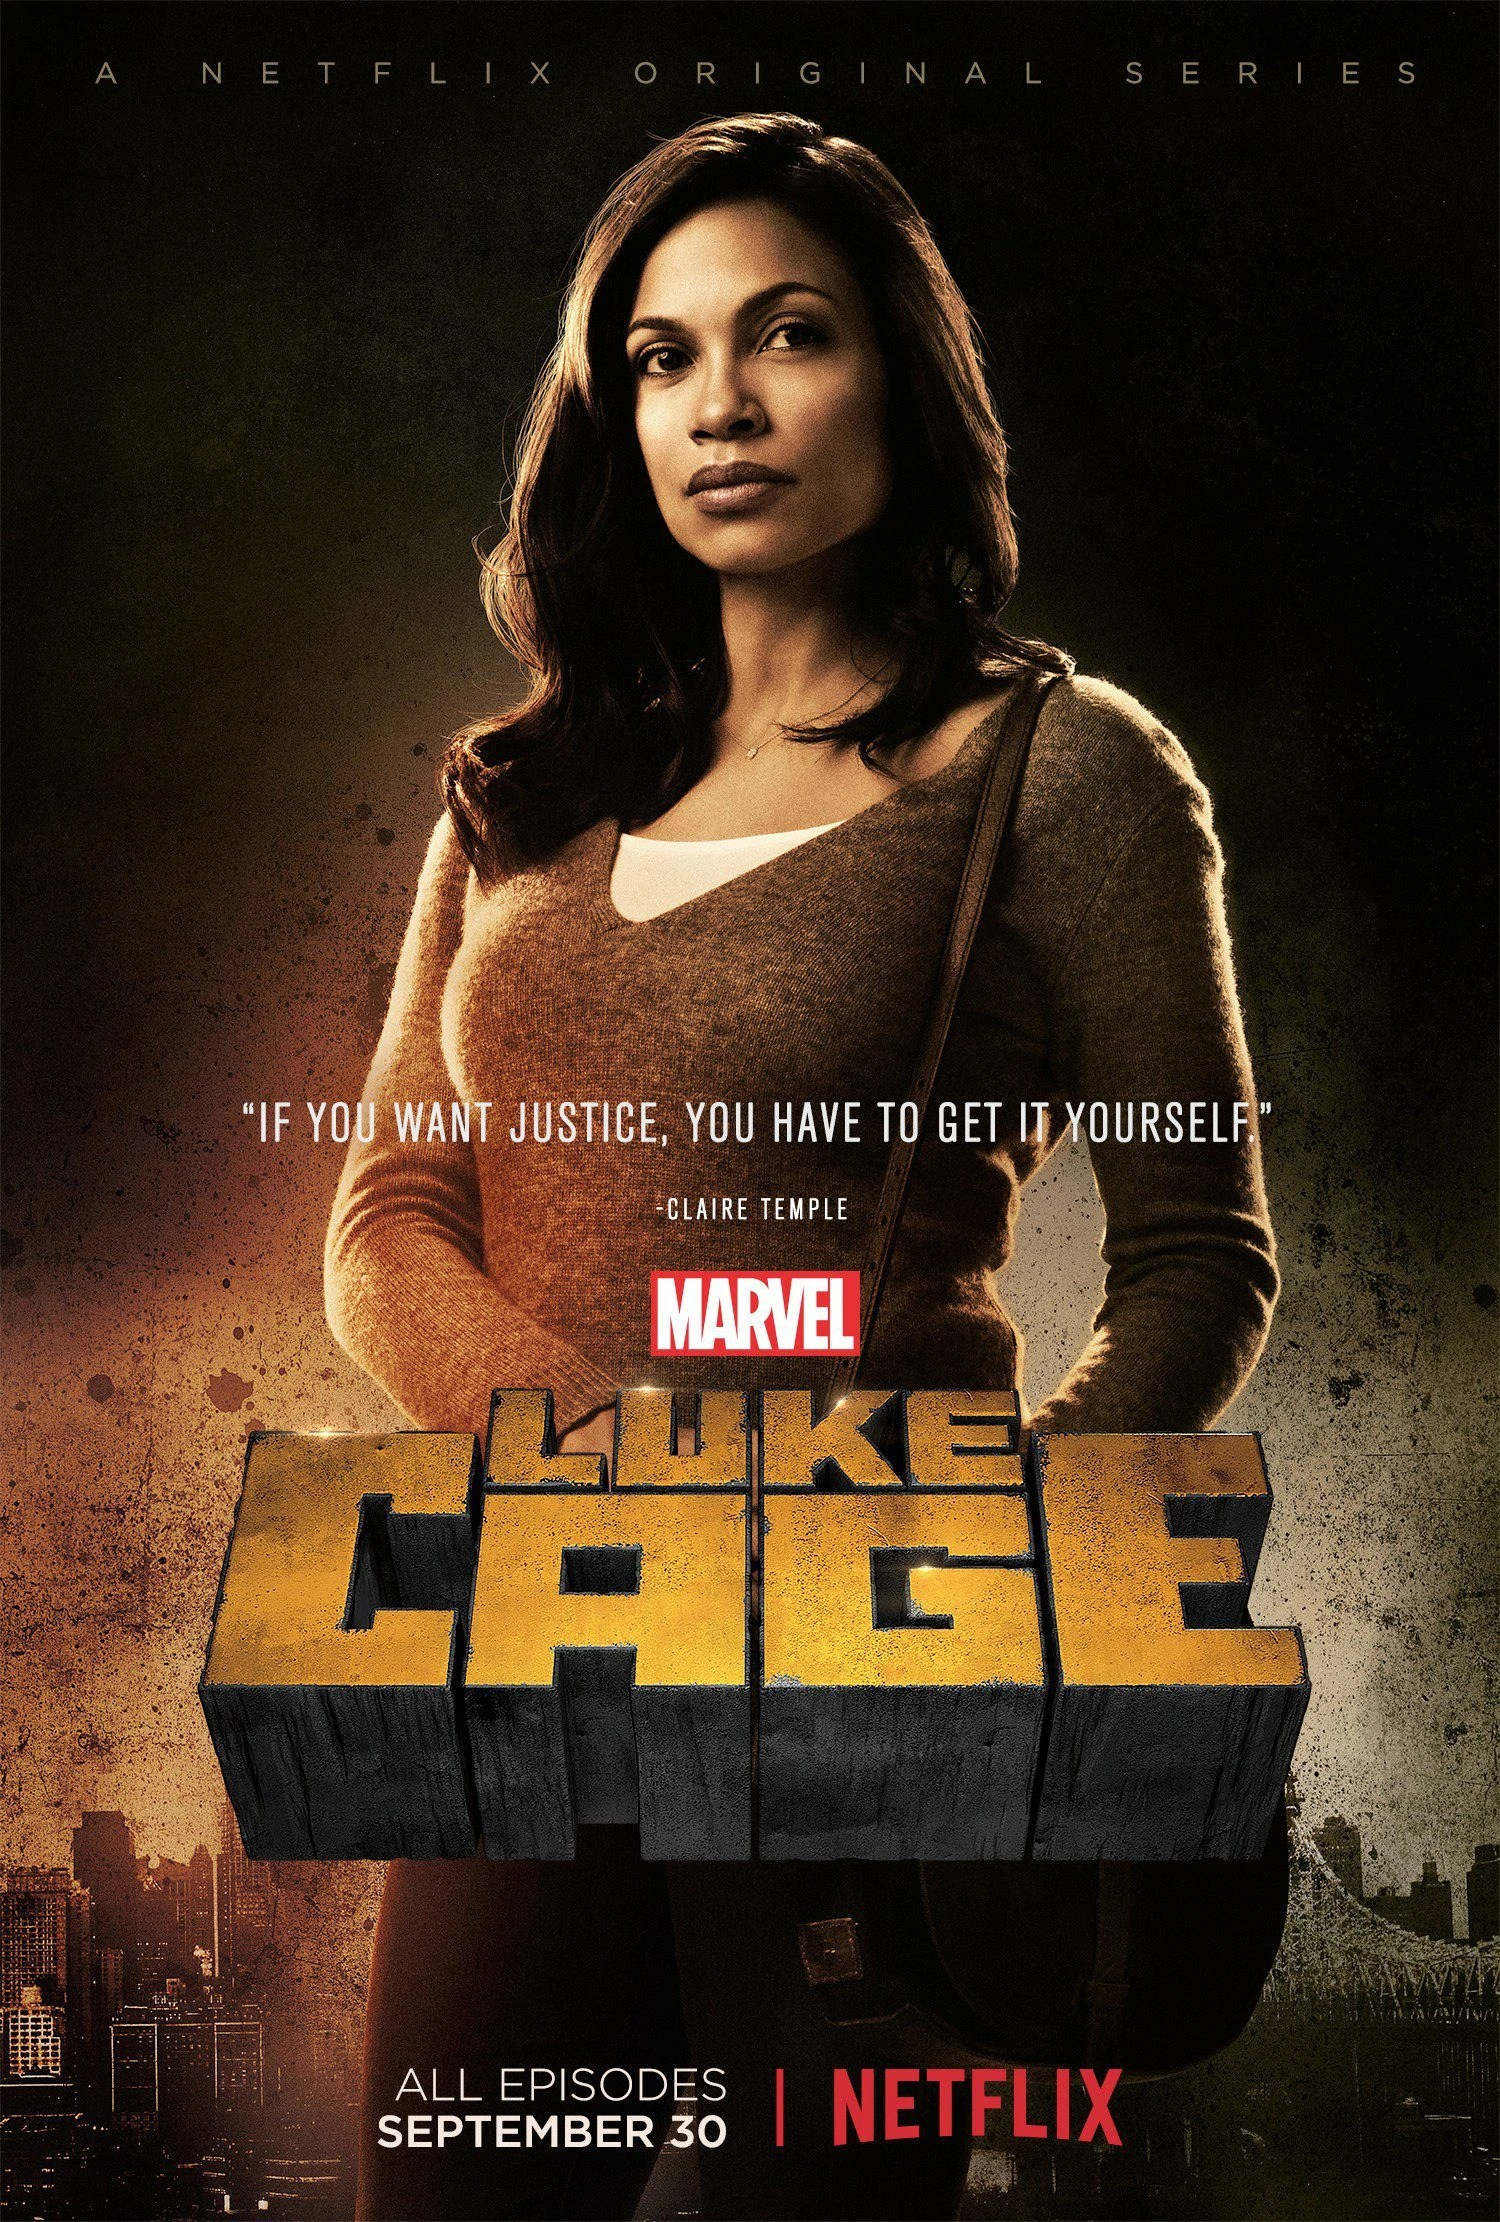 Image   Luke Cage Clara Poster jpg   Marvel Movies   FANDOM powered     Luke Cage Clara Poster jpg